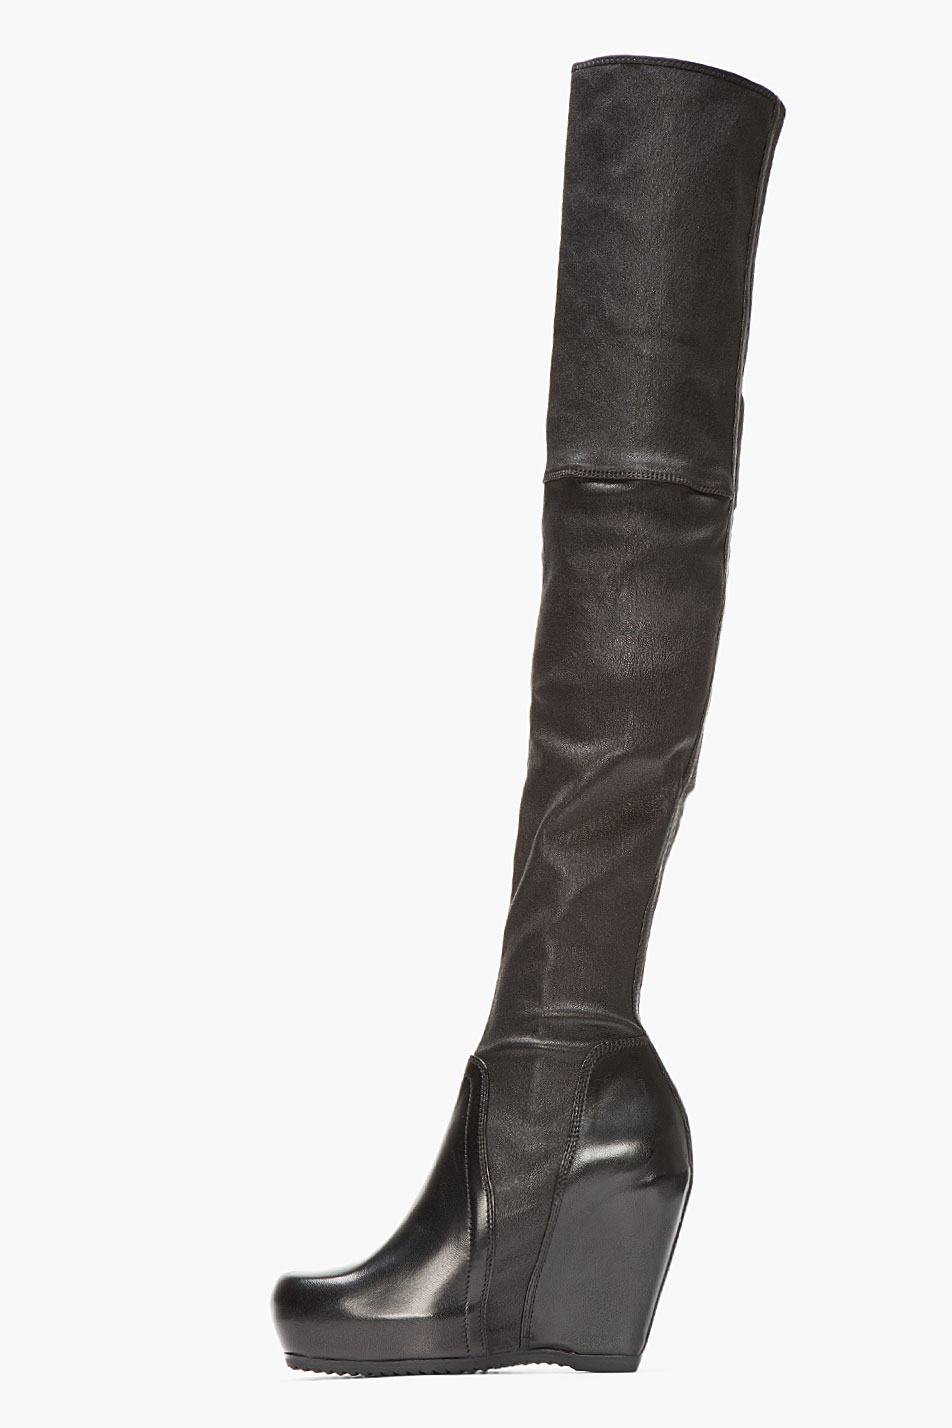 Rick Owens Leather Over-The-Knee Wedge Boots best sale cheap online d3XWEnN70S